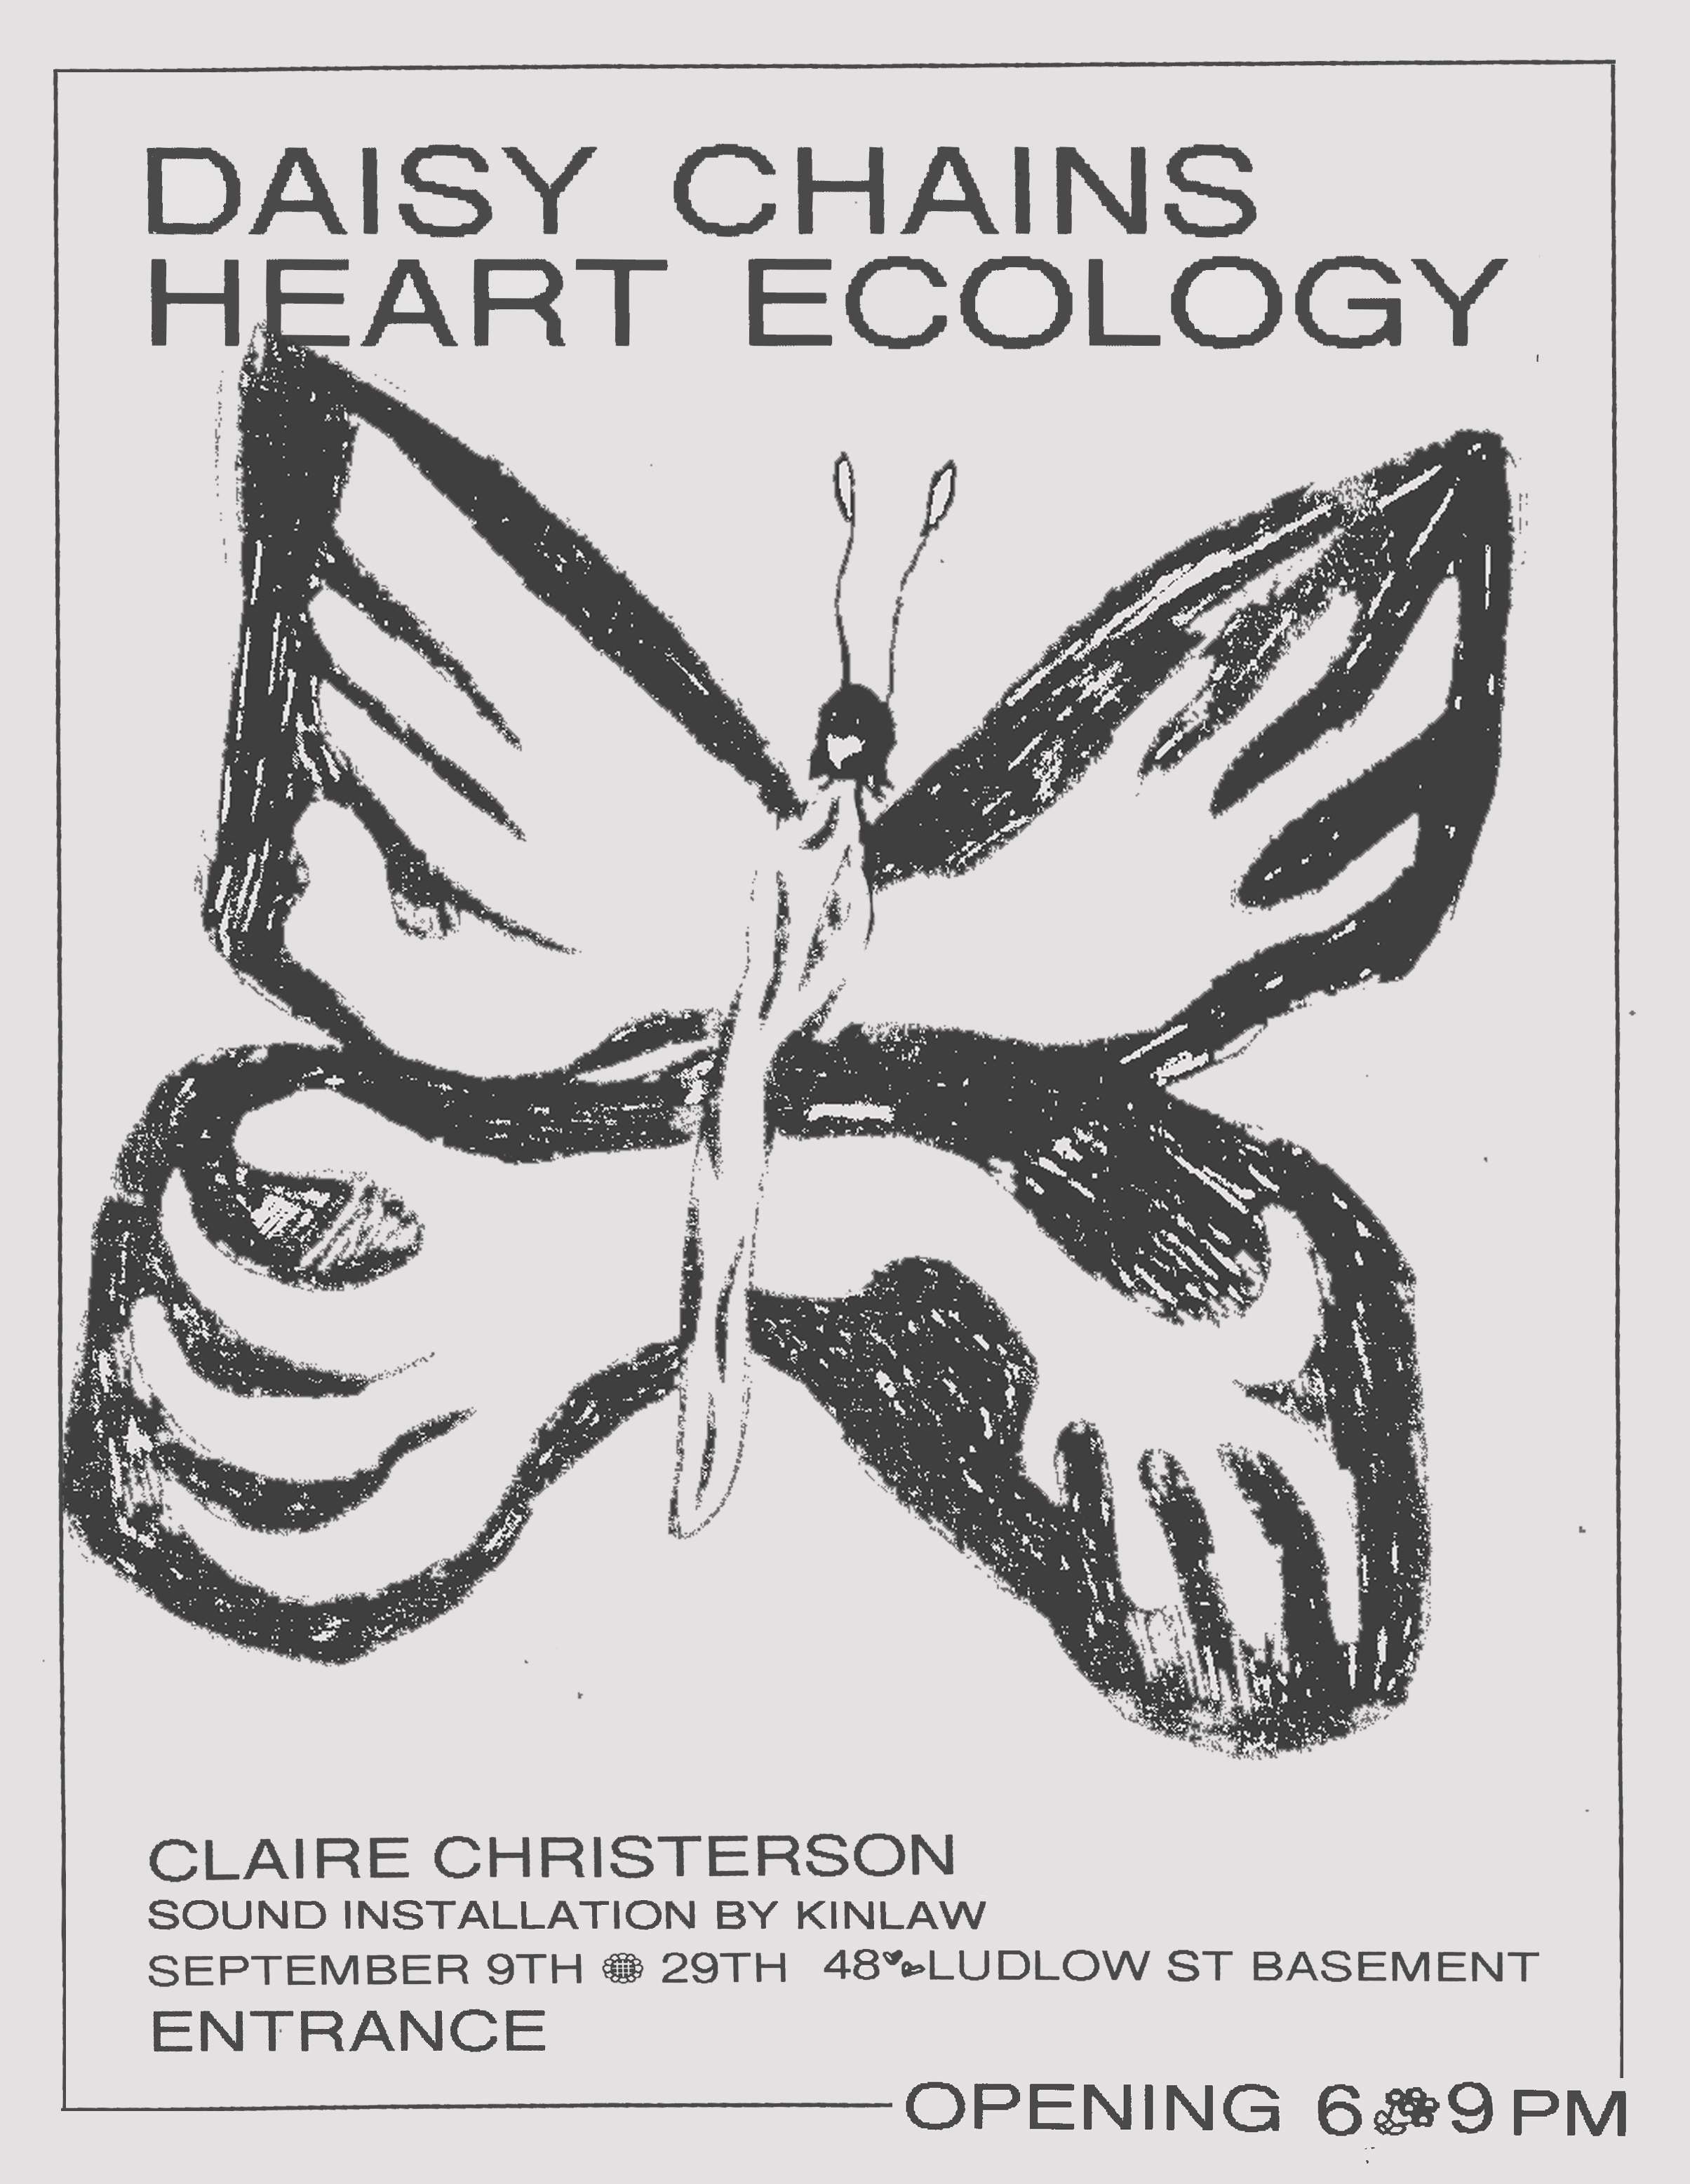 Claire Christerson, Daisy Chains Heart Ecology - September 9 – 29, 2017Opening: Saturday, September 9th from 6 – 9 pmAdd to: Google Calendar iCal